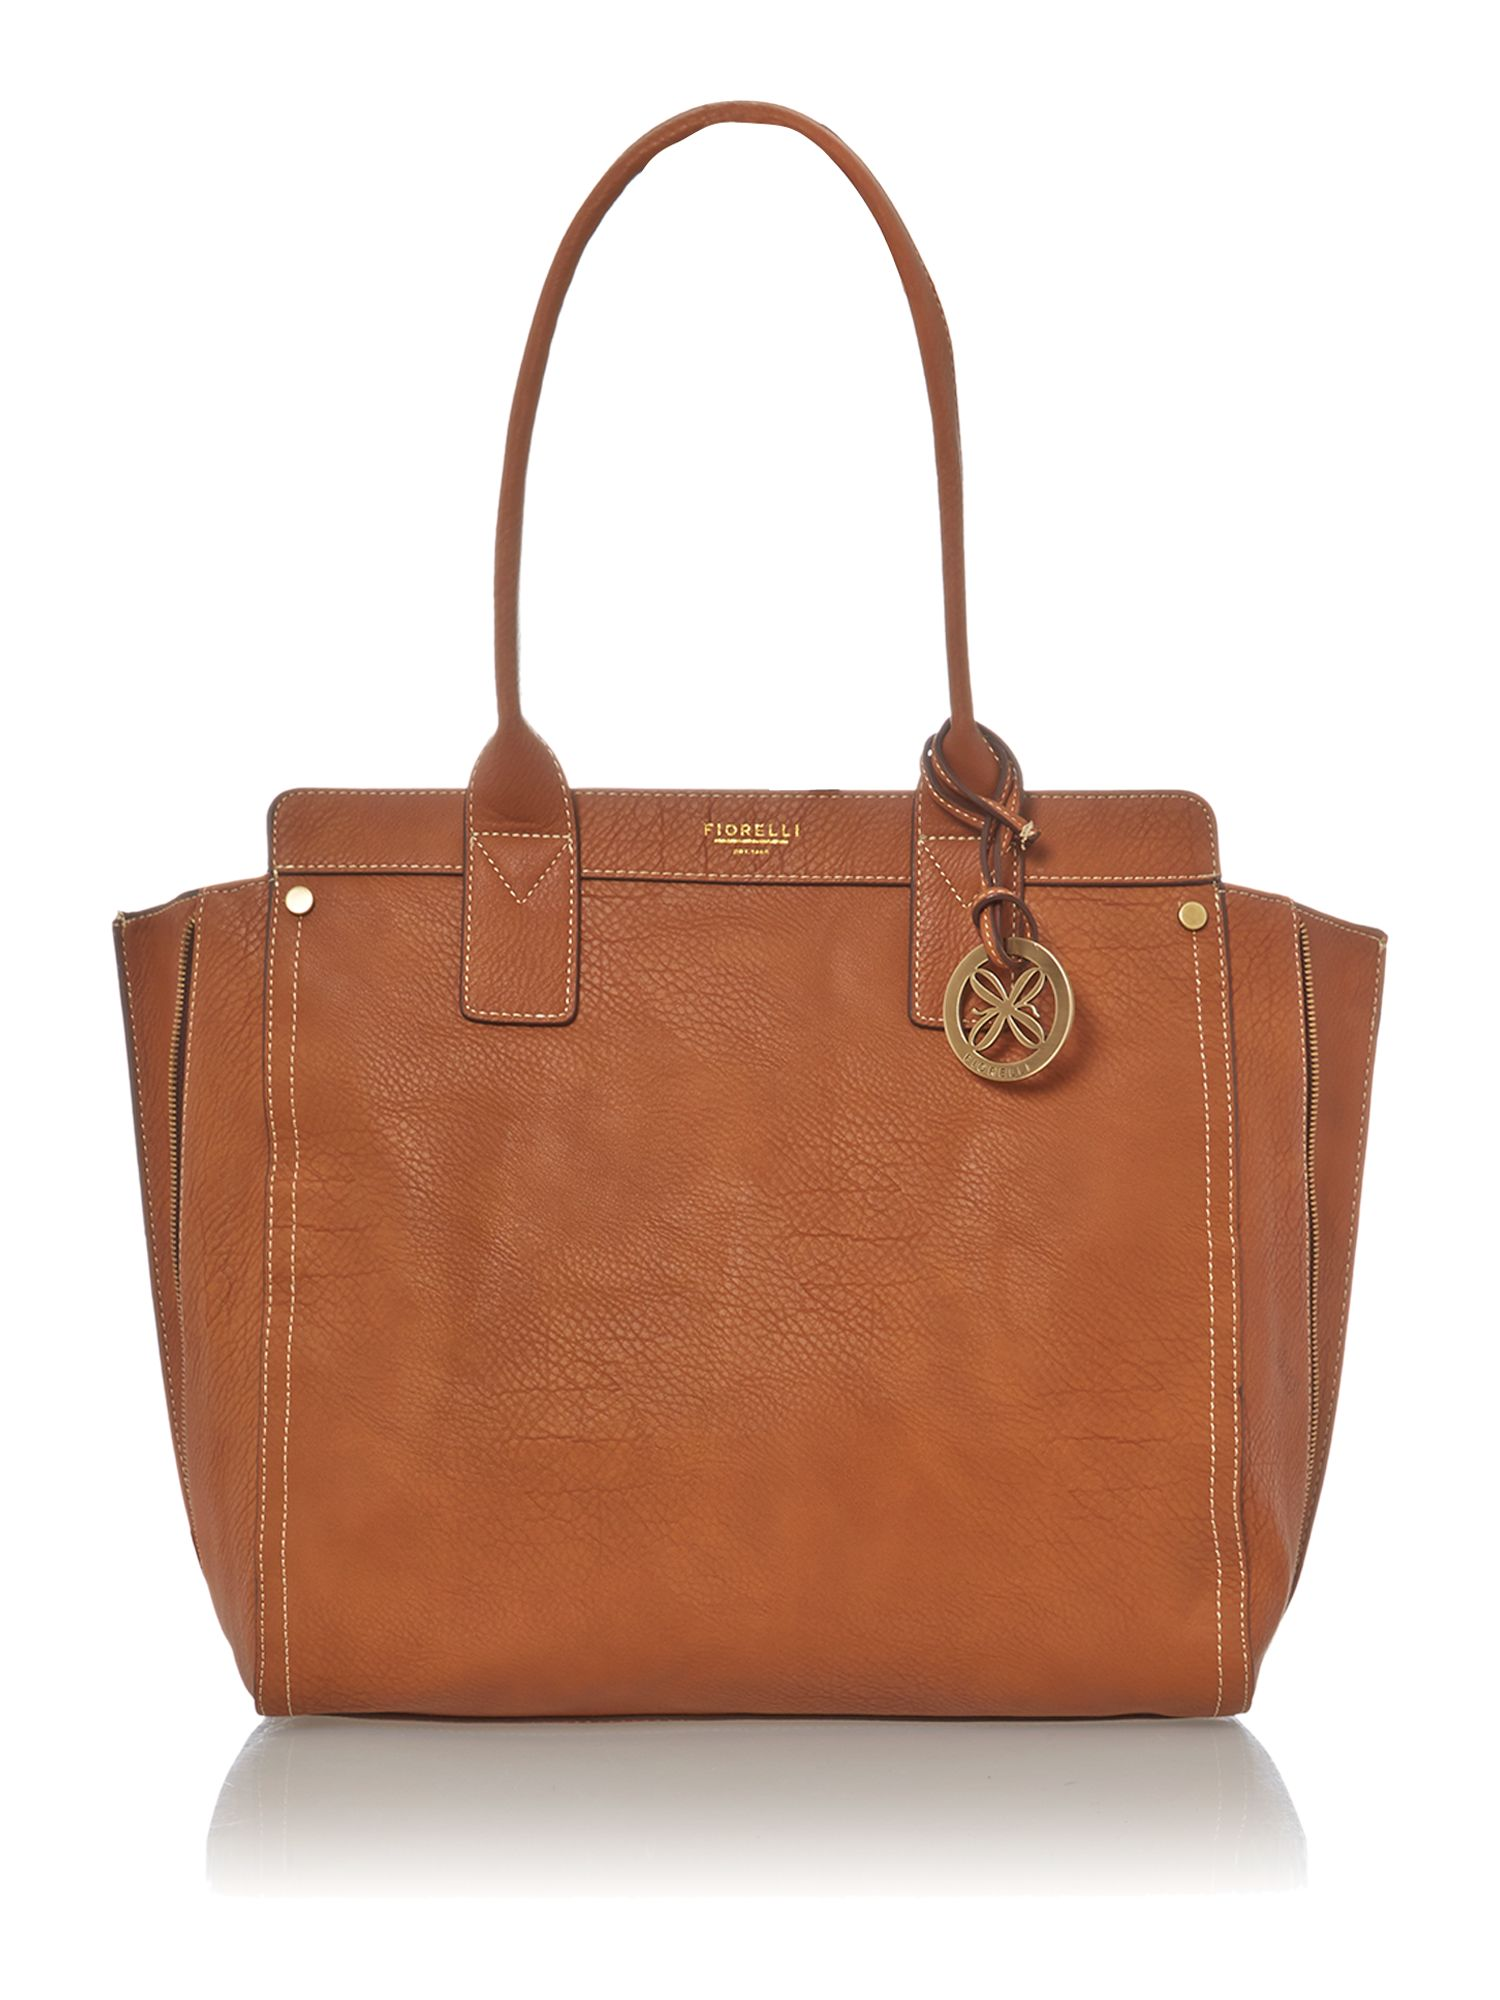 Agyness tan tote bag